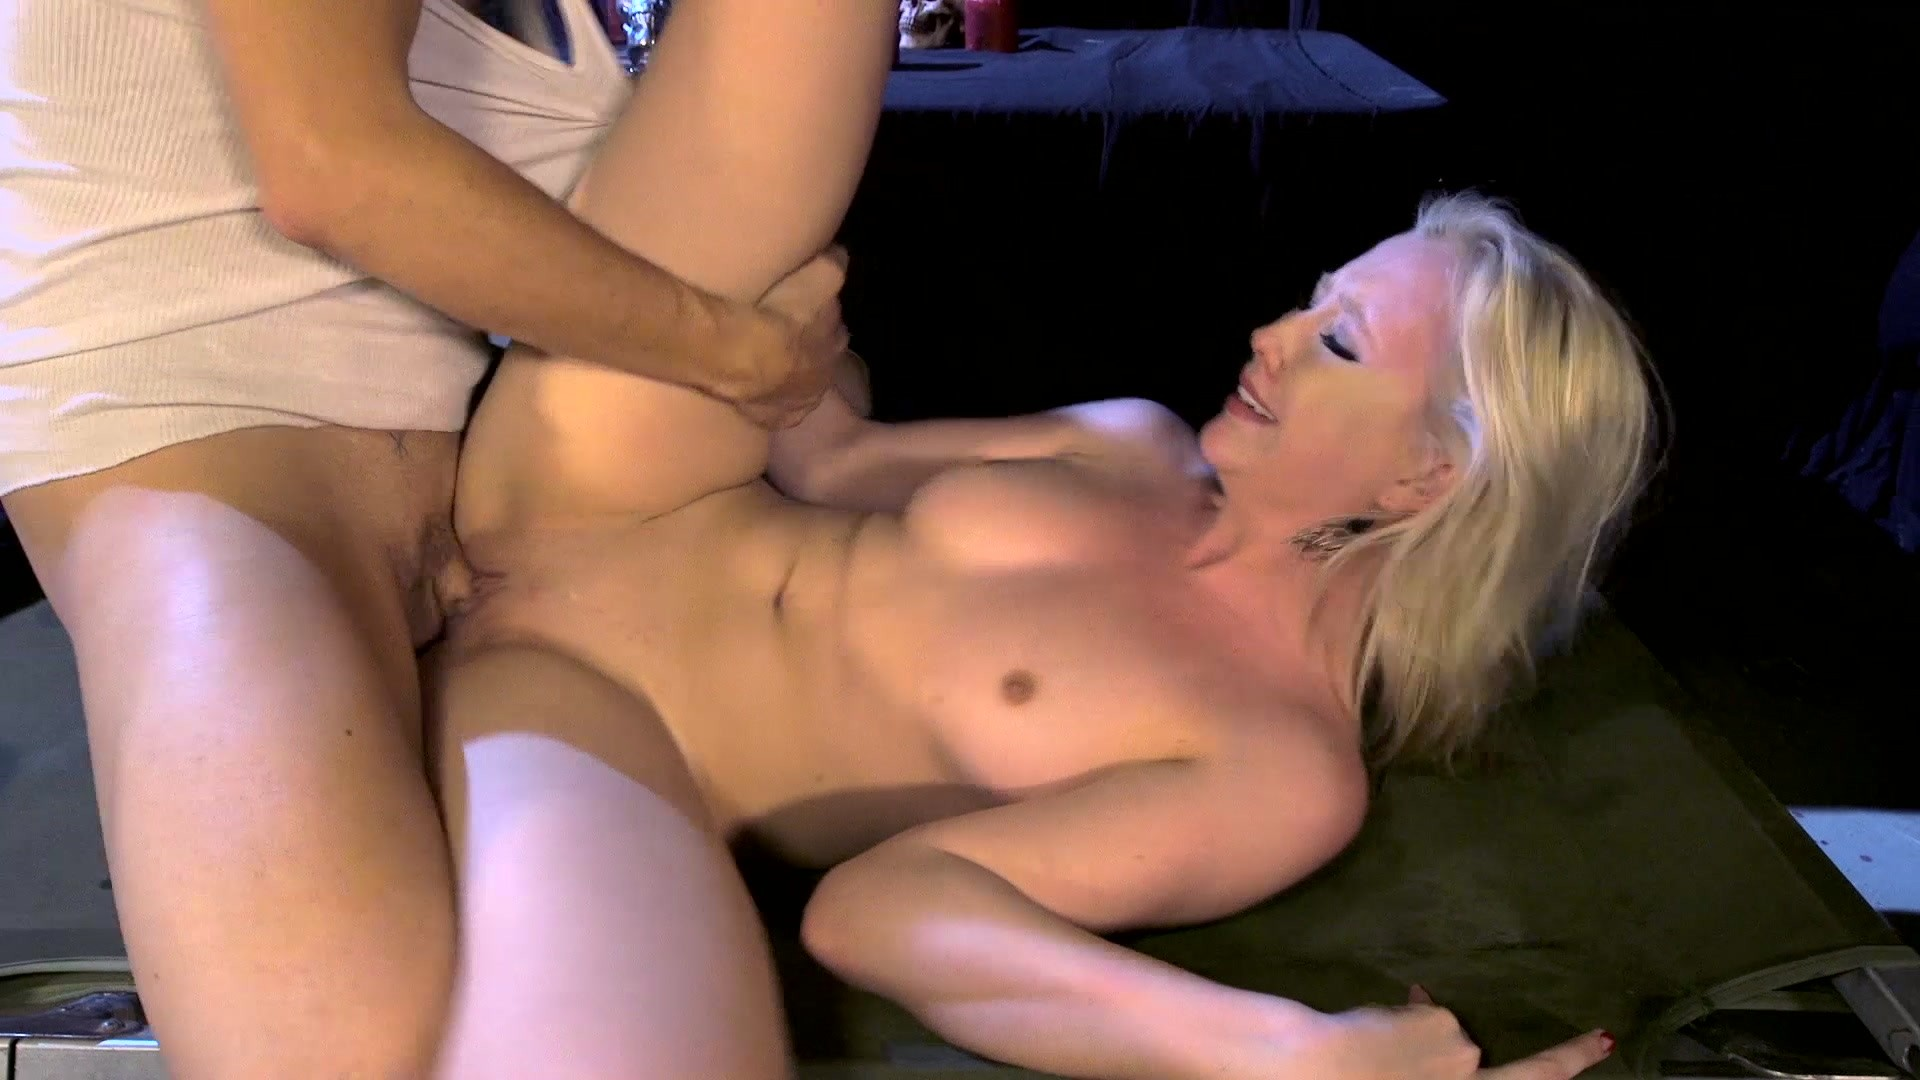 chloe brook interacial porn